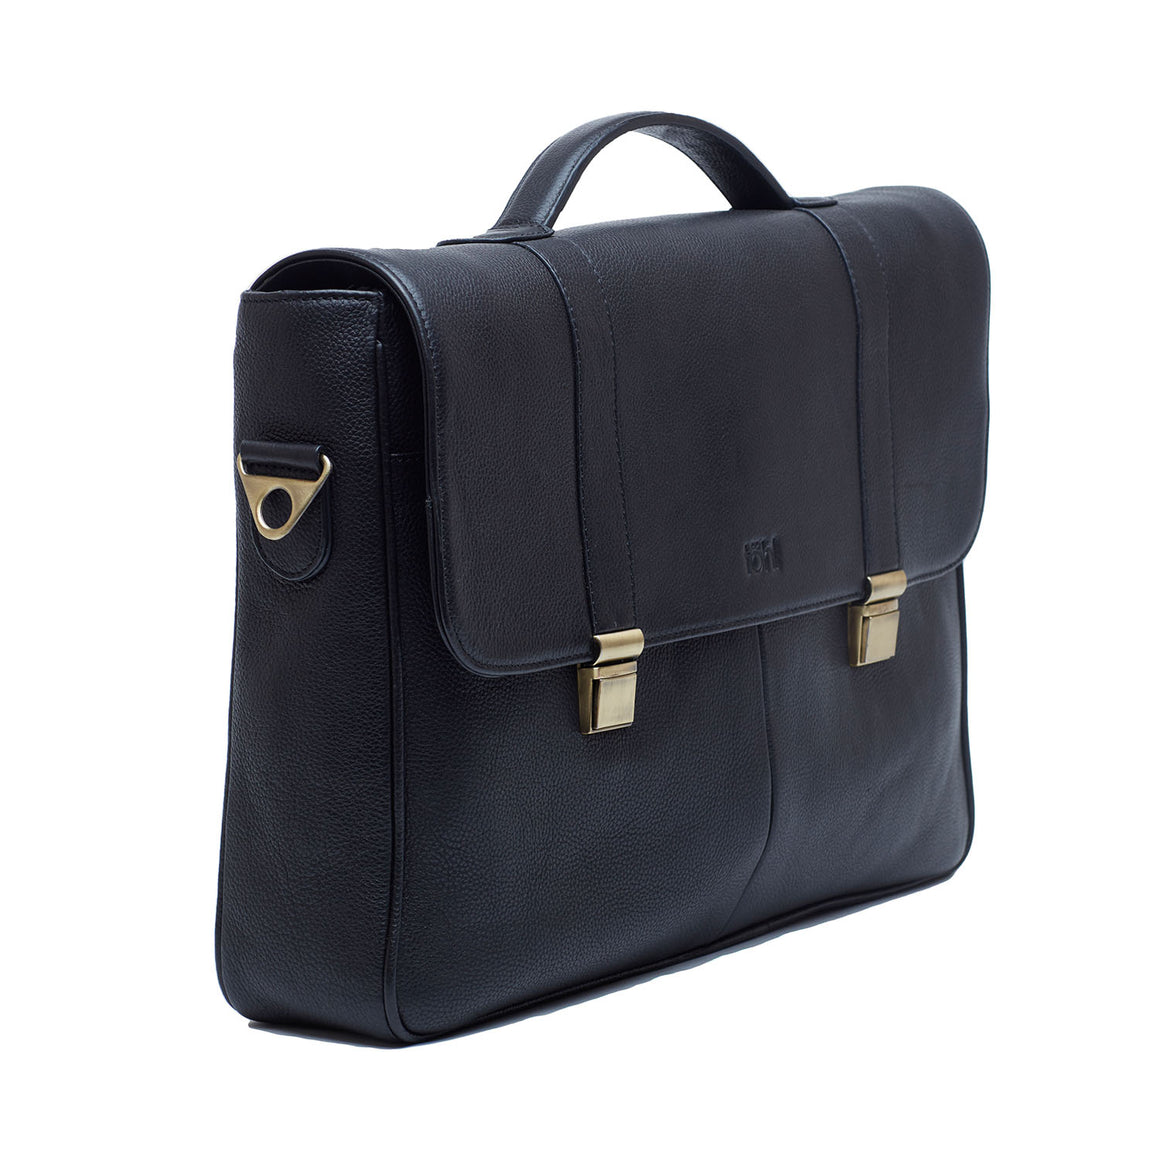 VS 0002 - TOHL CUNEO MEN'S VALISES & SATCHELS - CHARCOAL BLACK